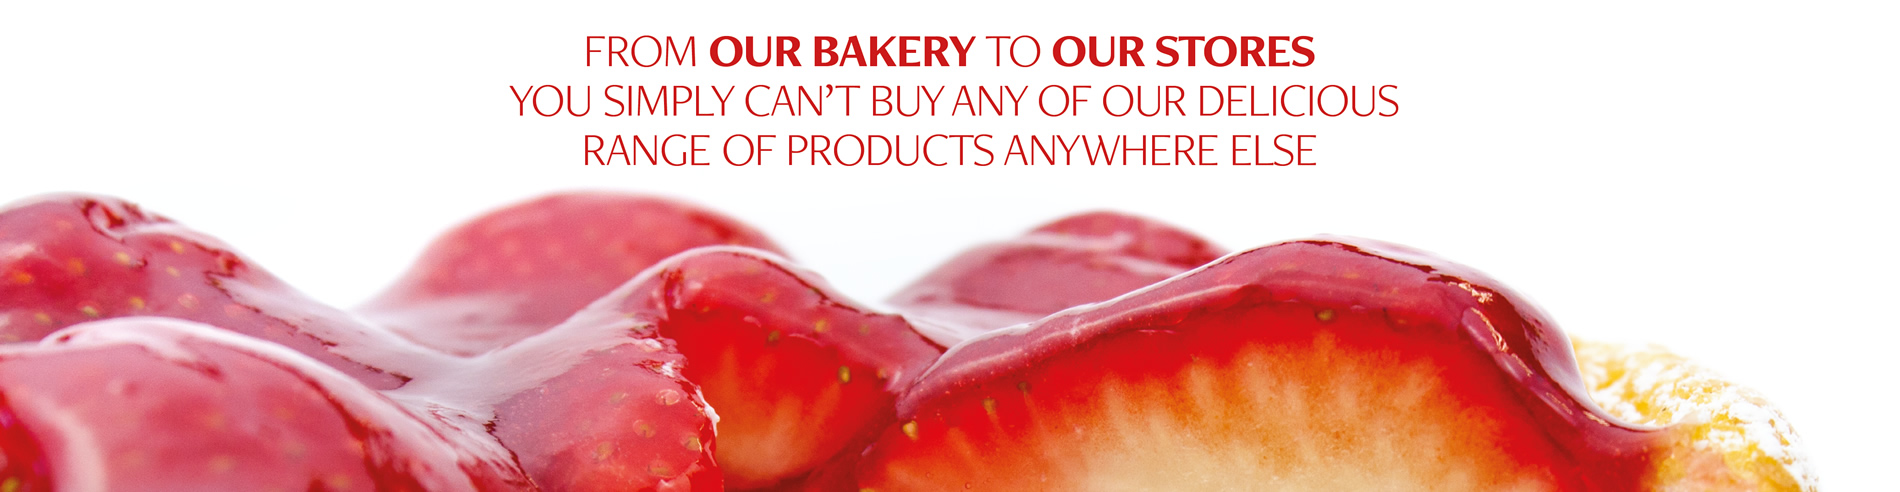 Strawberry Cake. You simply can't buy our delicious range of products anywhere else